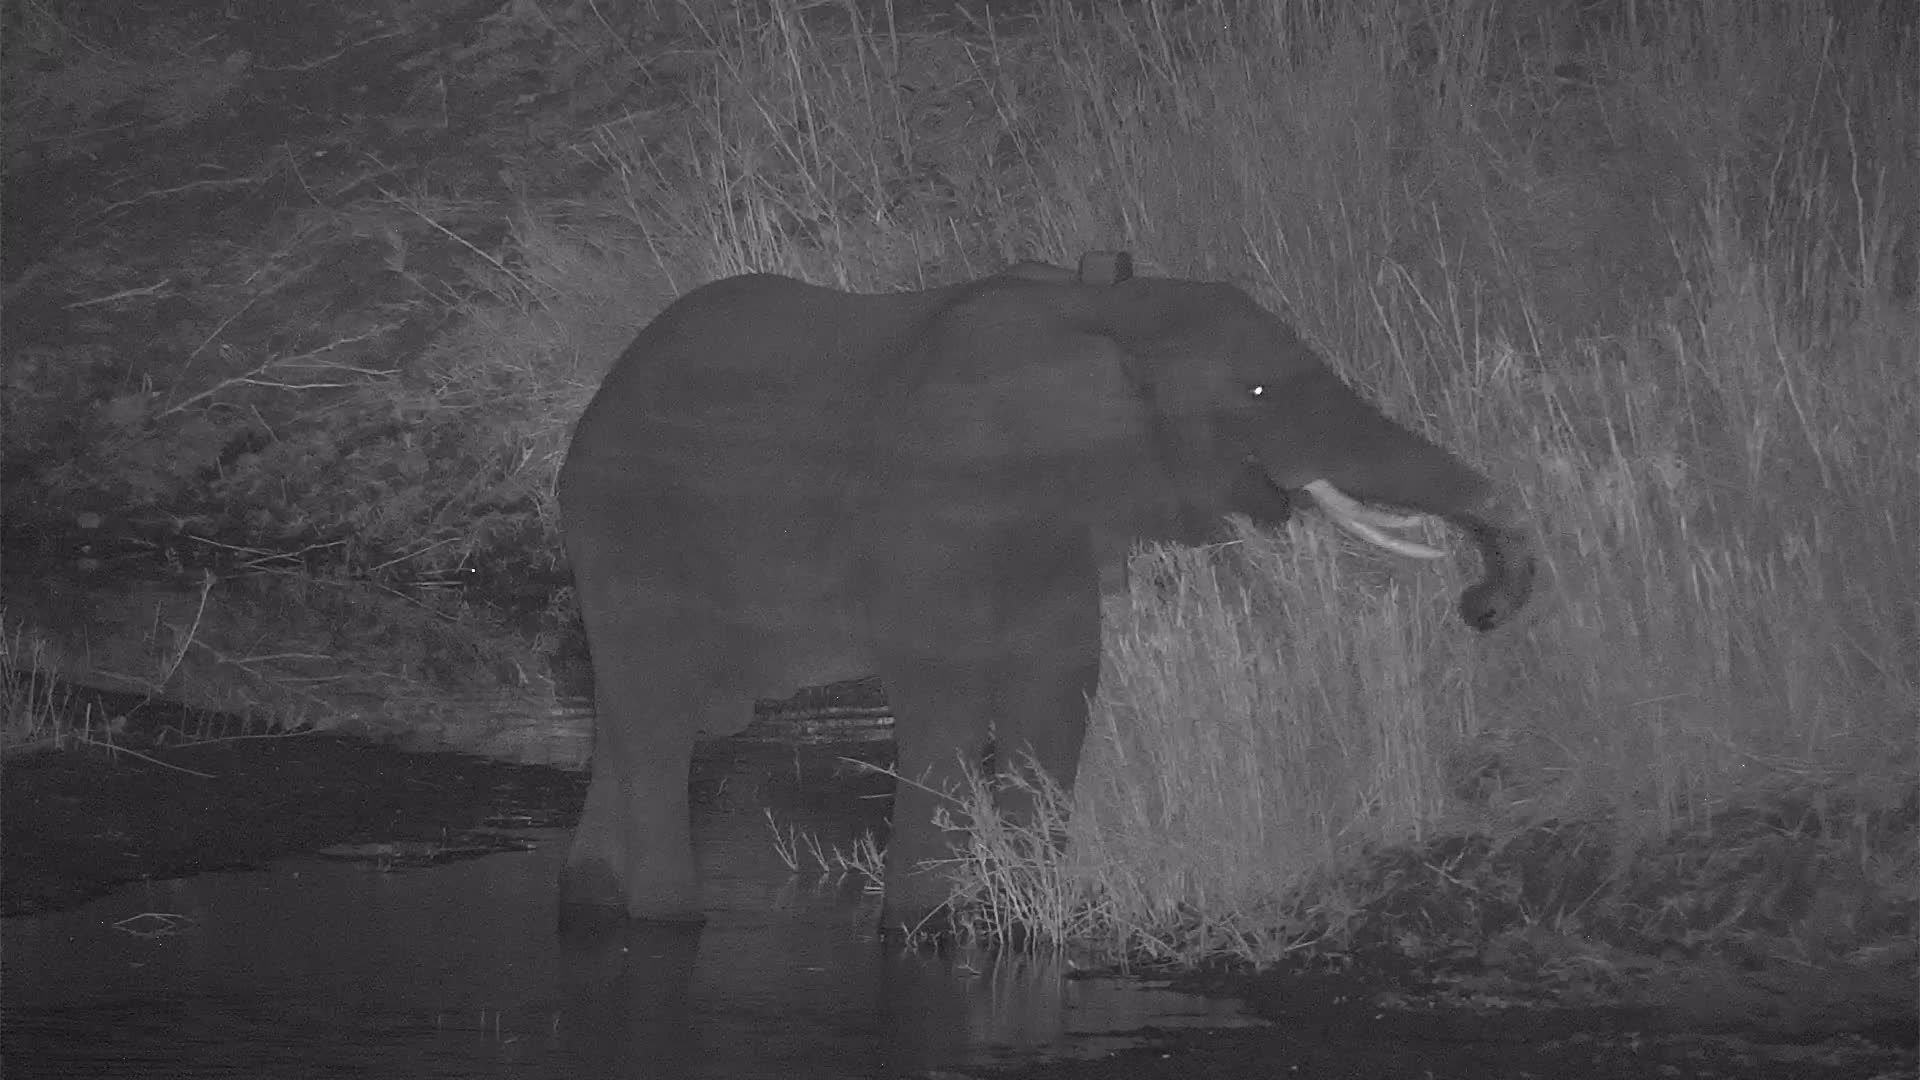 VIDEO: Elephant grazing by the river